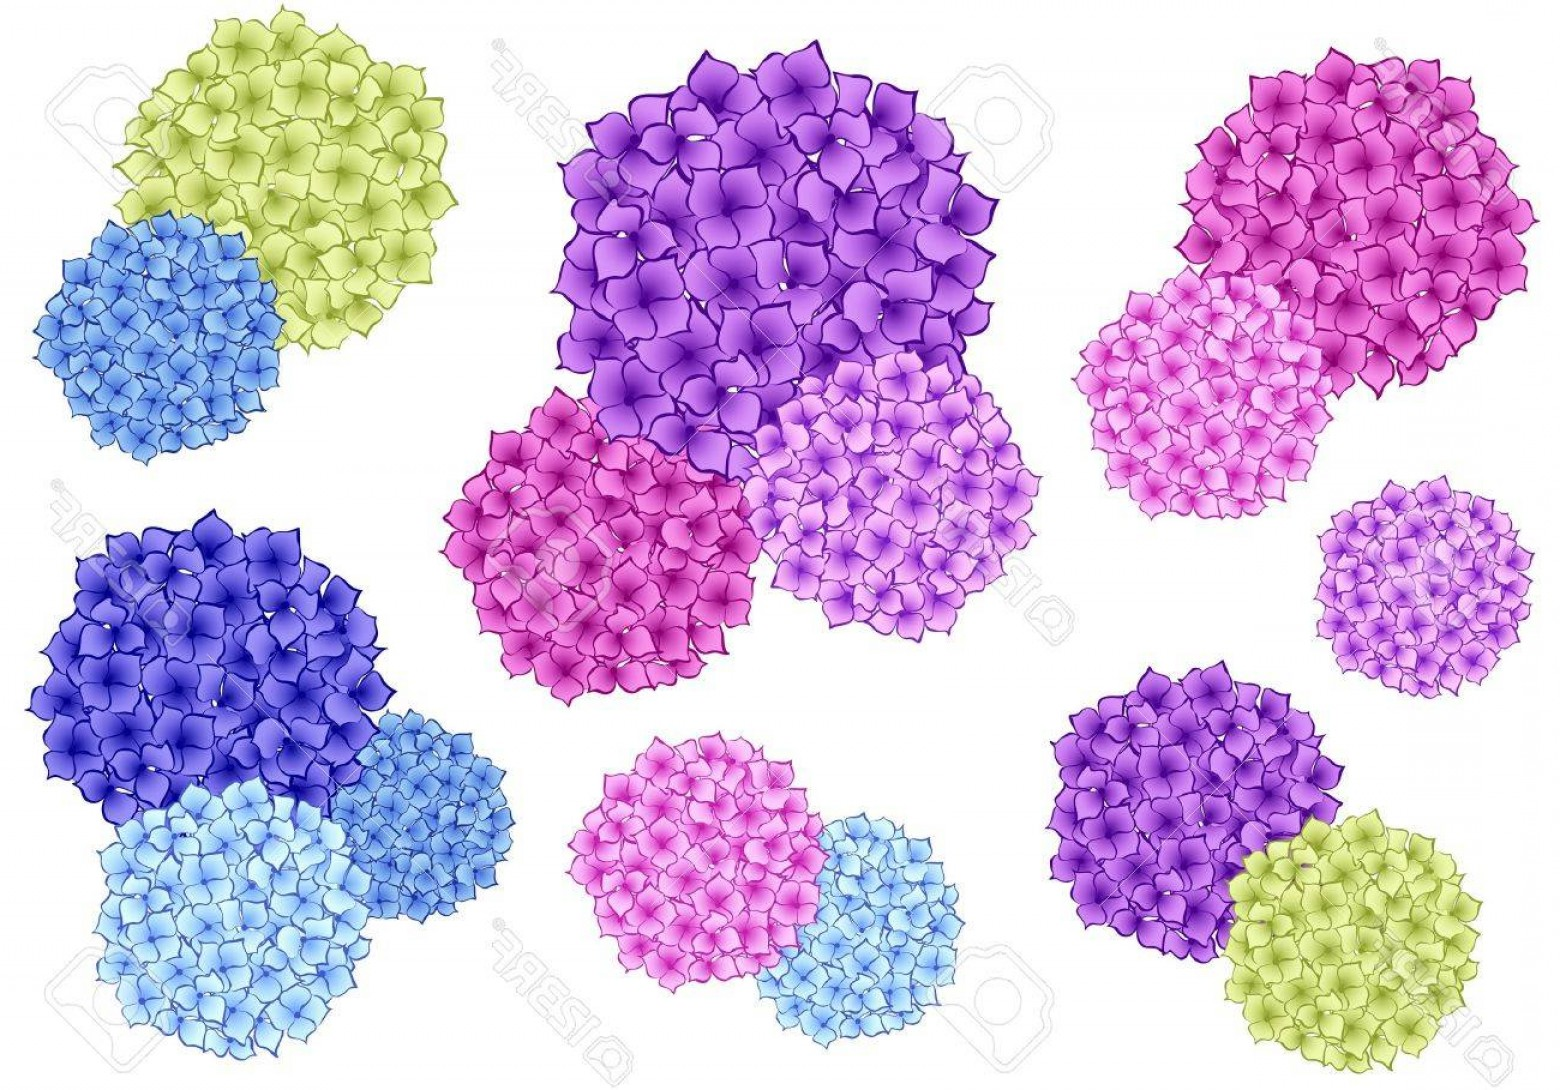 Hydrangea Vector Graphics: Photoset Of Colorful Hydrangea Flowers Vector Design Elements